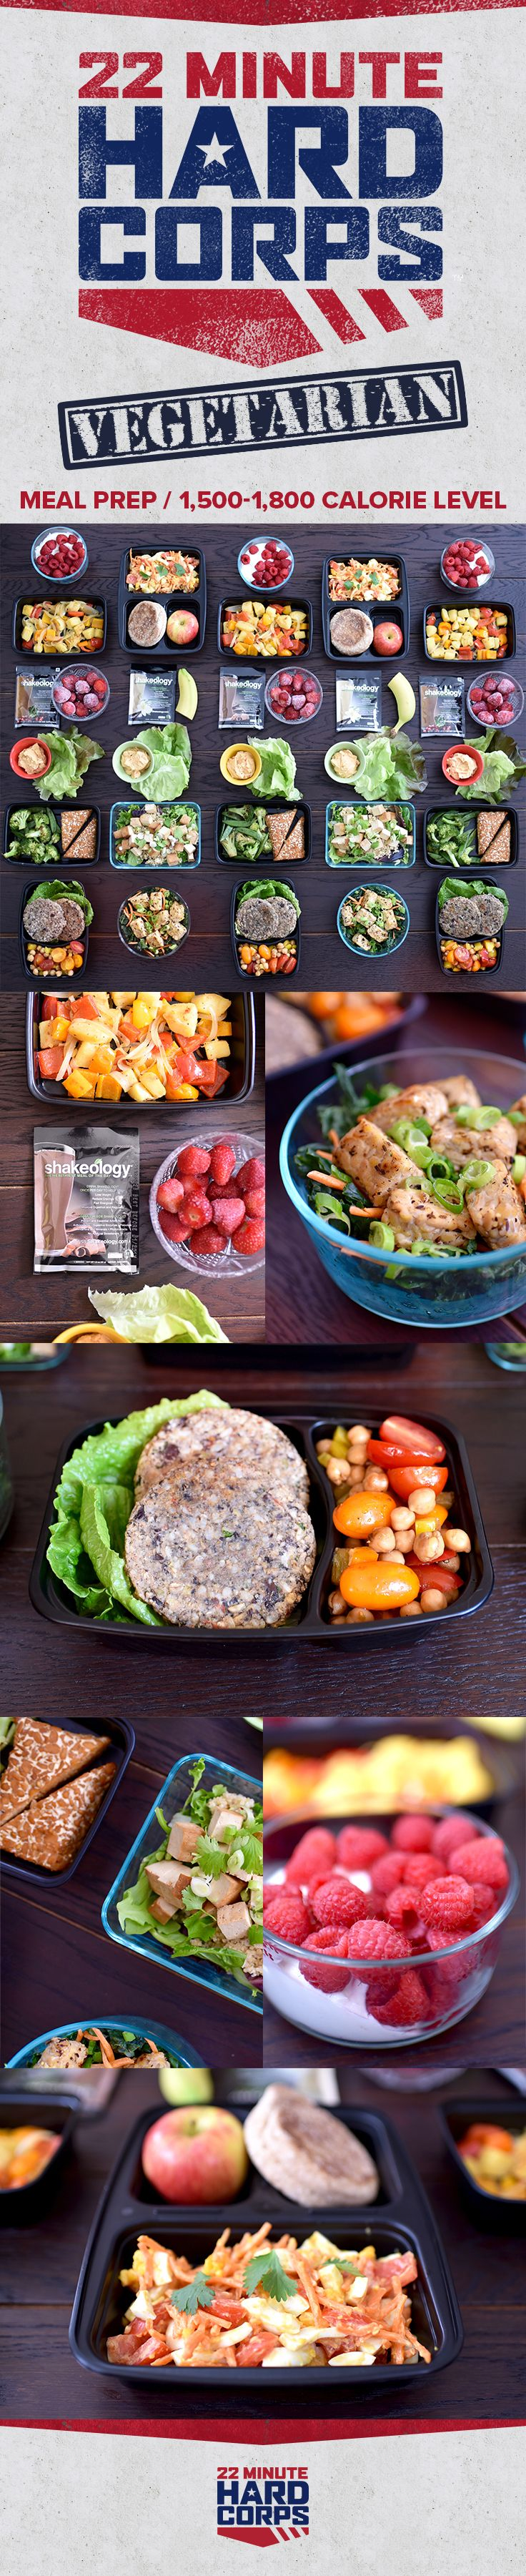 Let us help you prep your week! Here's a step-by-step vegetarian meal prep for 22 Minute Hard Corps (it also works with 21 Day Fix, 22 Minute Hard Corps, and The Master's Hammer and Chisel!) // meal planning // shakeology // Beachbody // BeachbodyBlog.com